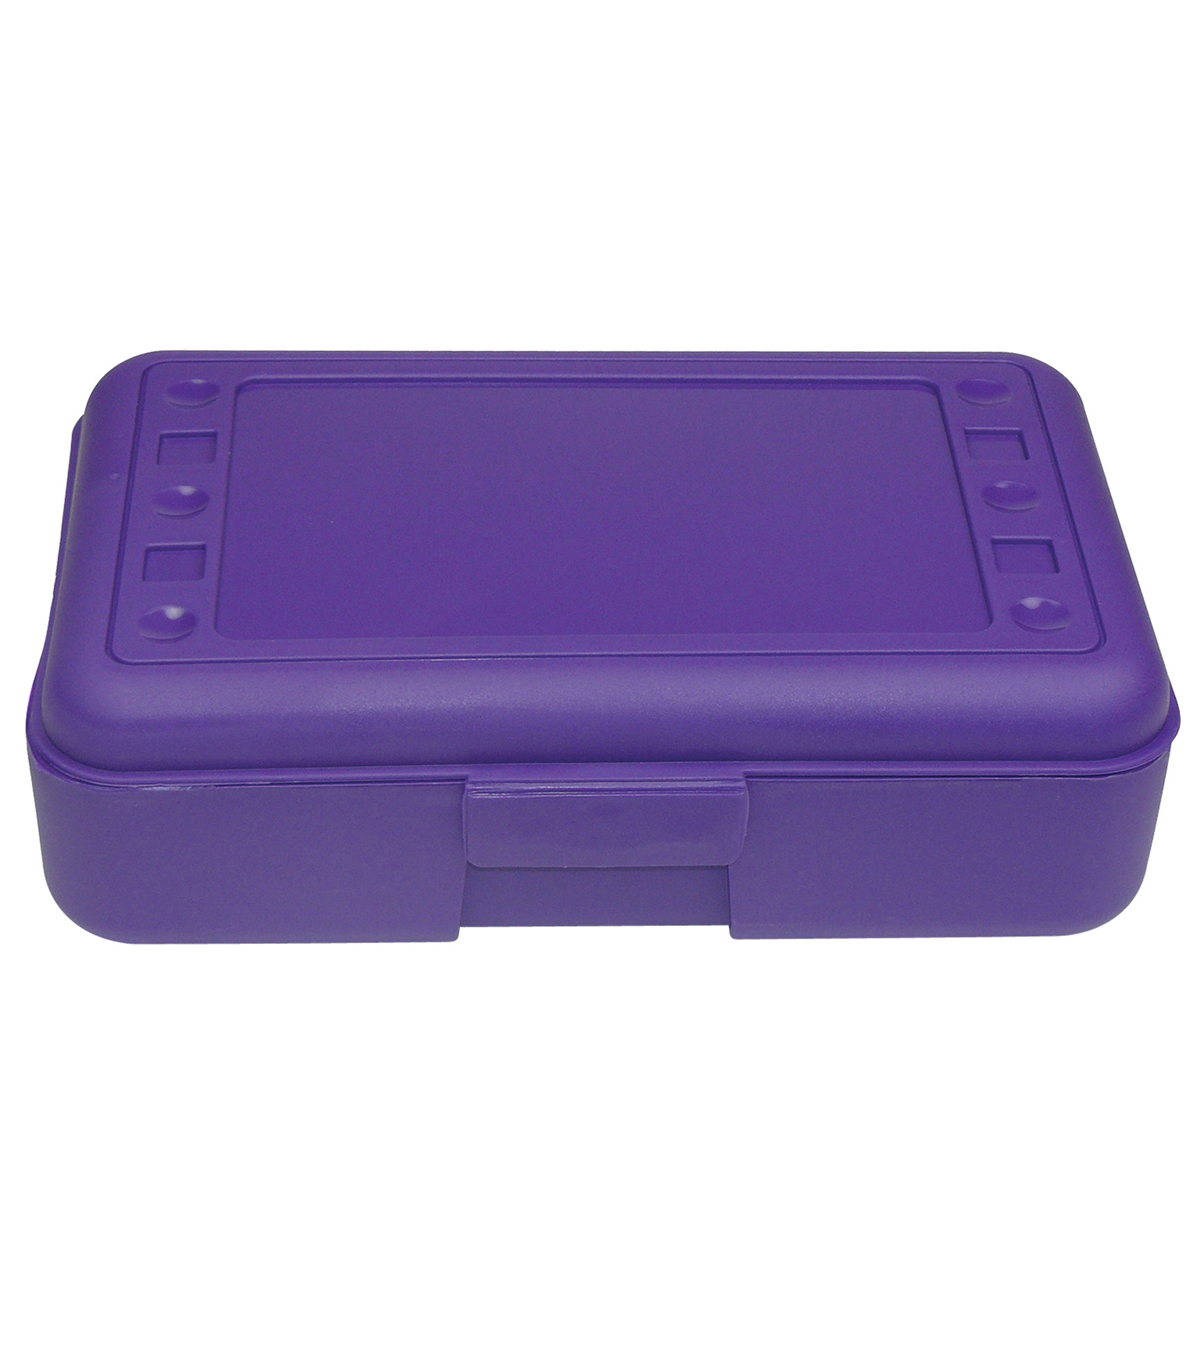 Romanoff Products Pencil Box, Pack of 12, Purple